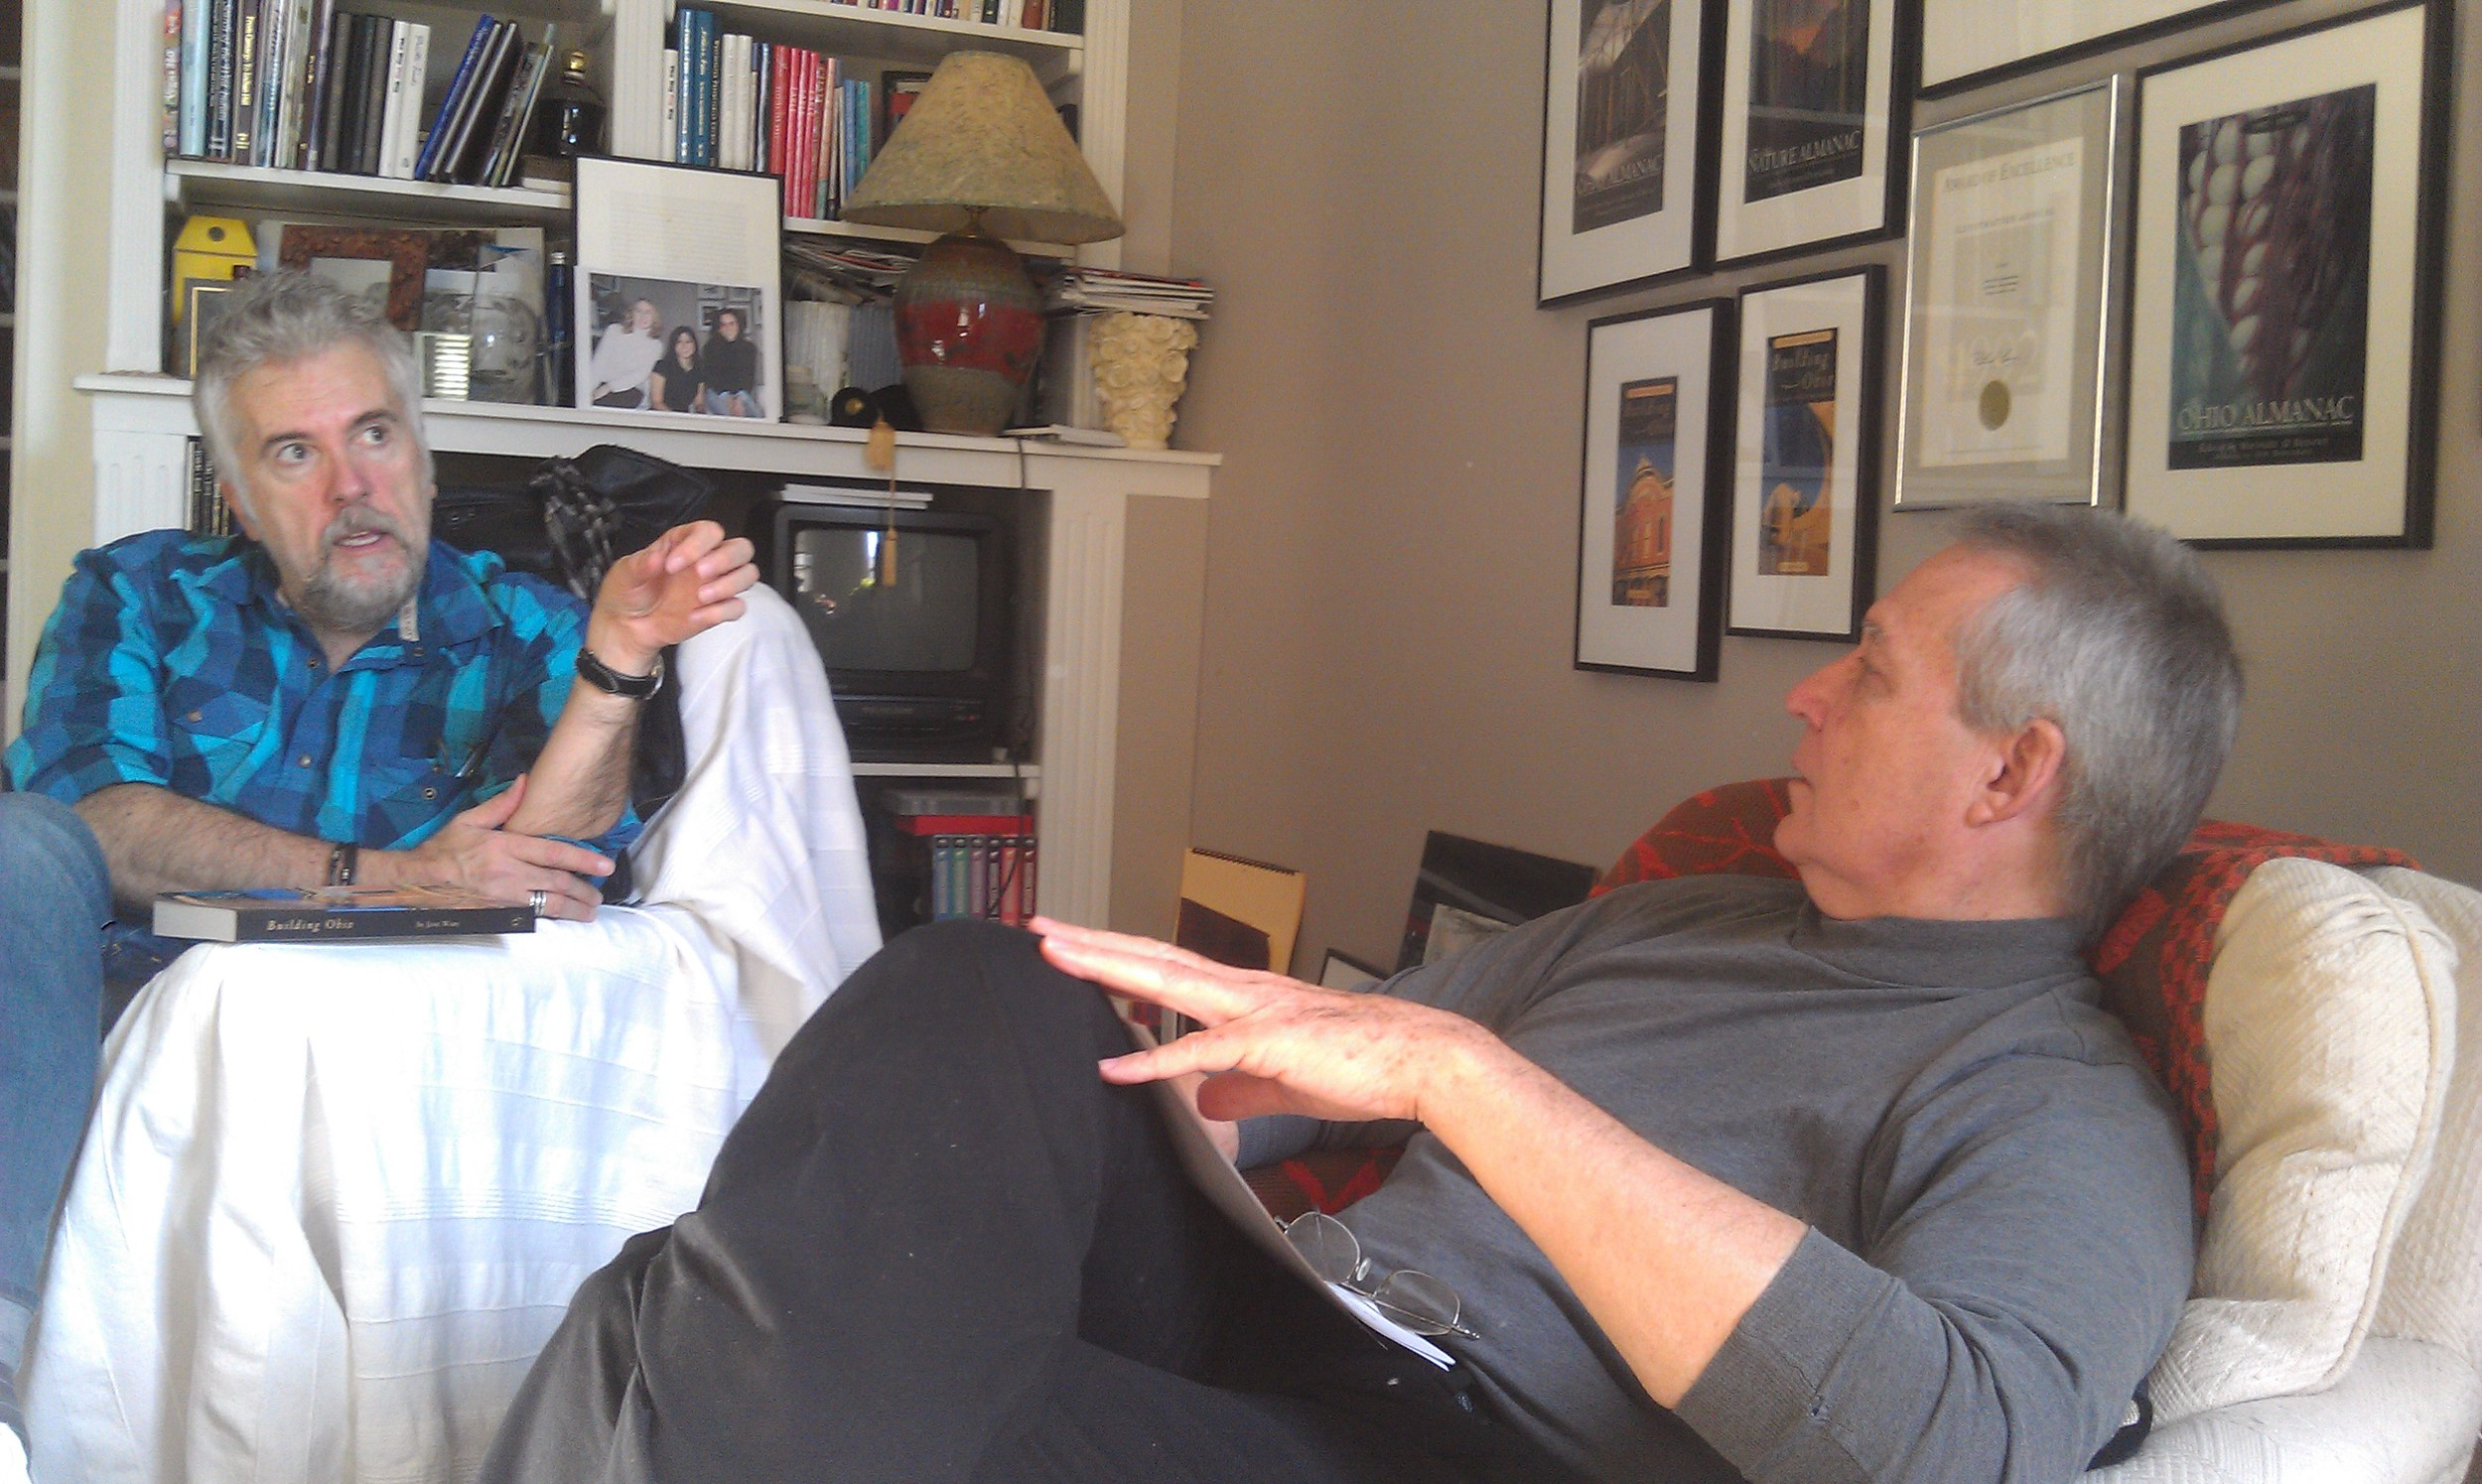 Our editor John Baskin talking over a book project with author Phil Nuxhall.